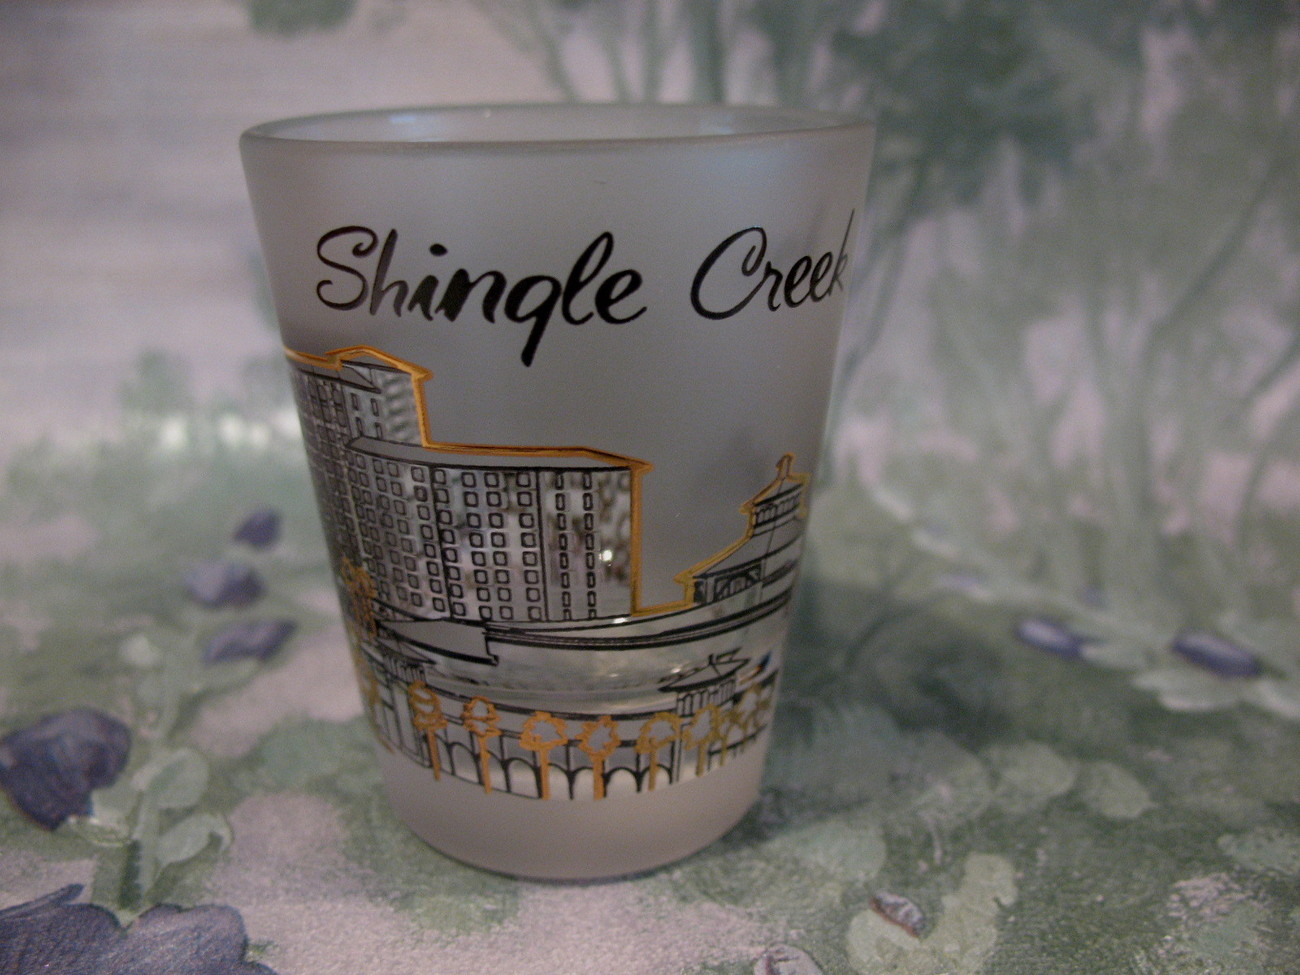 Rosen Shingle Creek Orlando Florida Souvenir Shot Glass